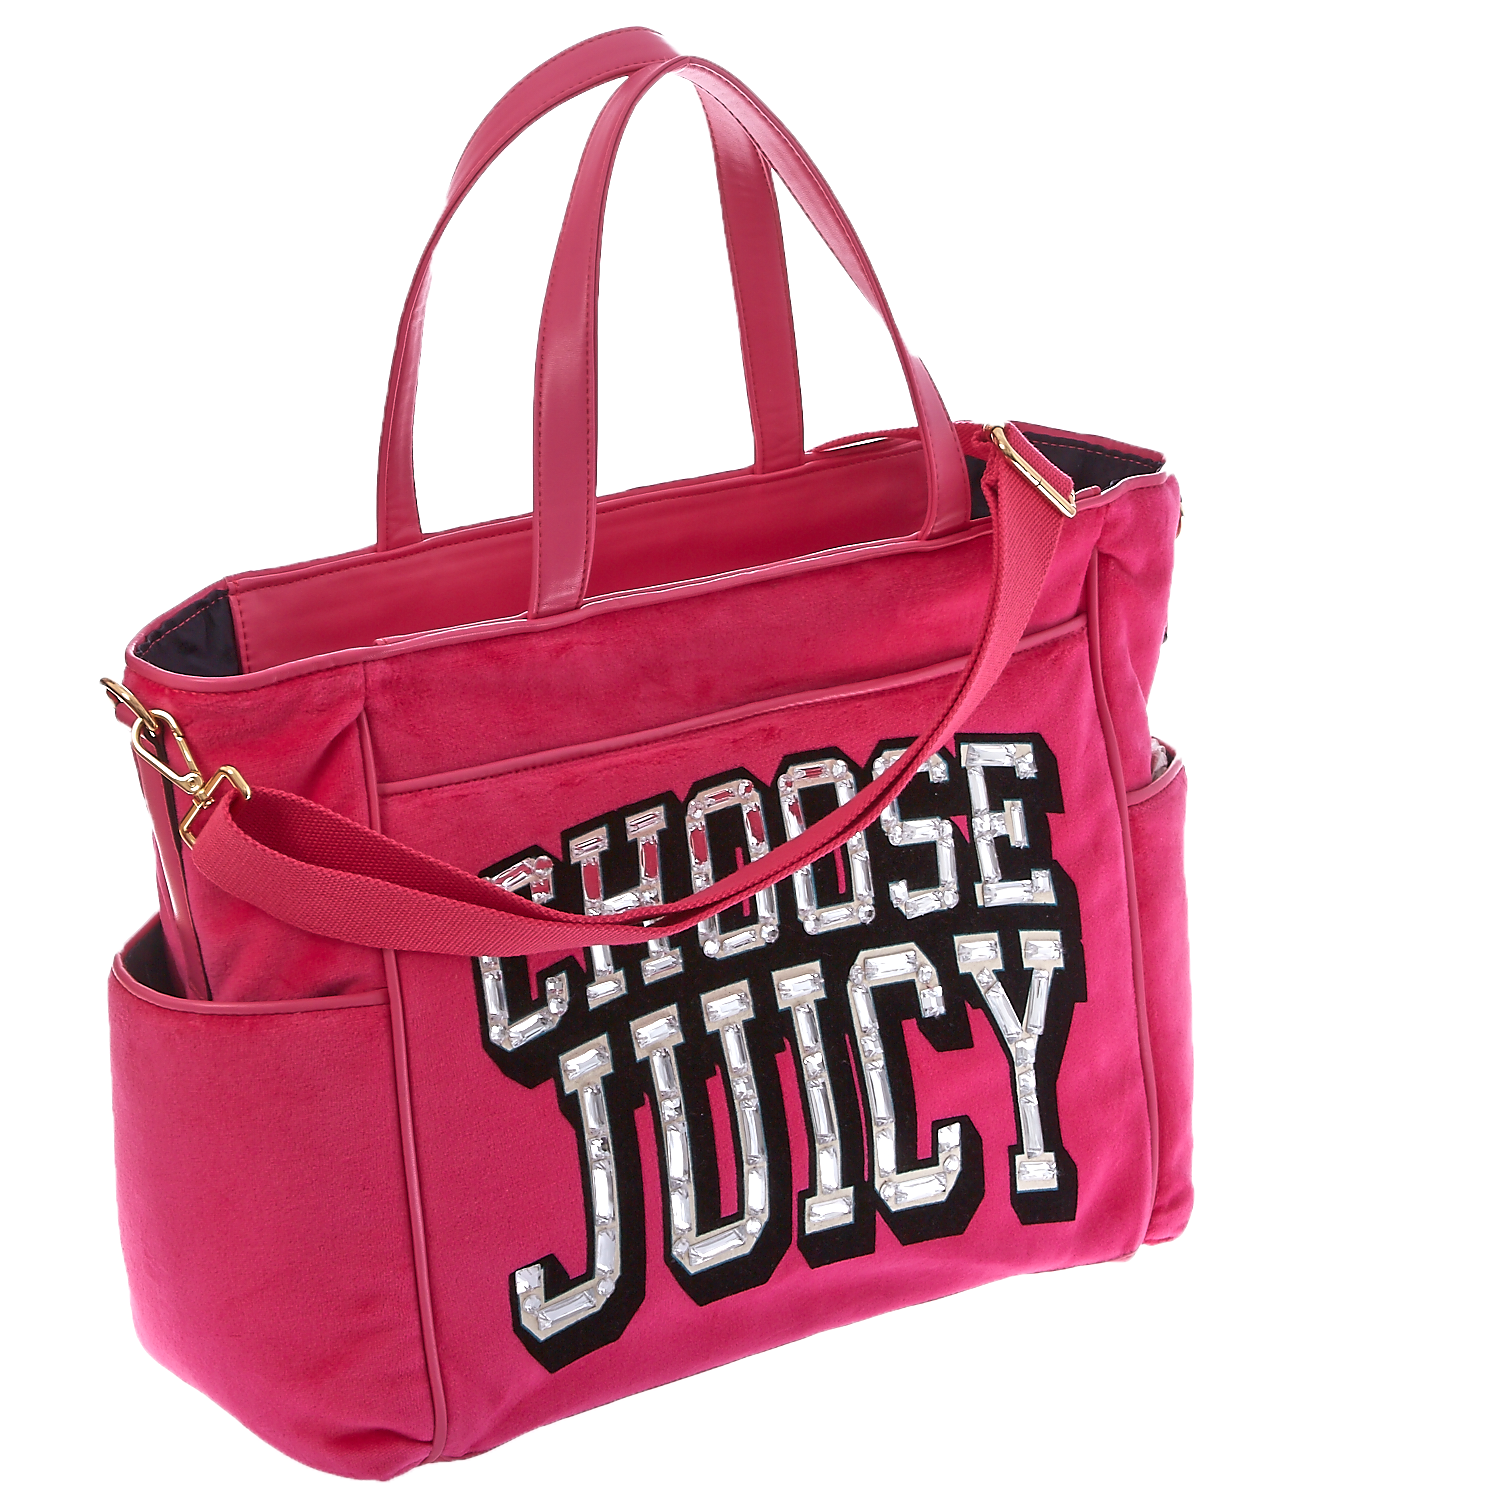 JUICY COUTURE - Τσάντα μωρού Juicy Couture ροζ σκούρο γυναικεία αξεσουάρ τσάντες σακίδια χειρός